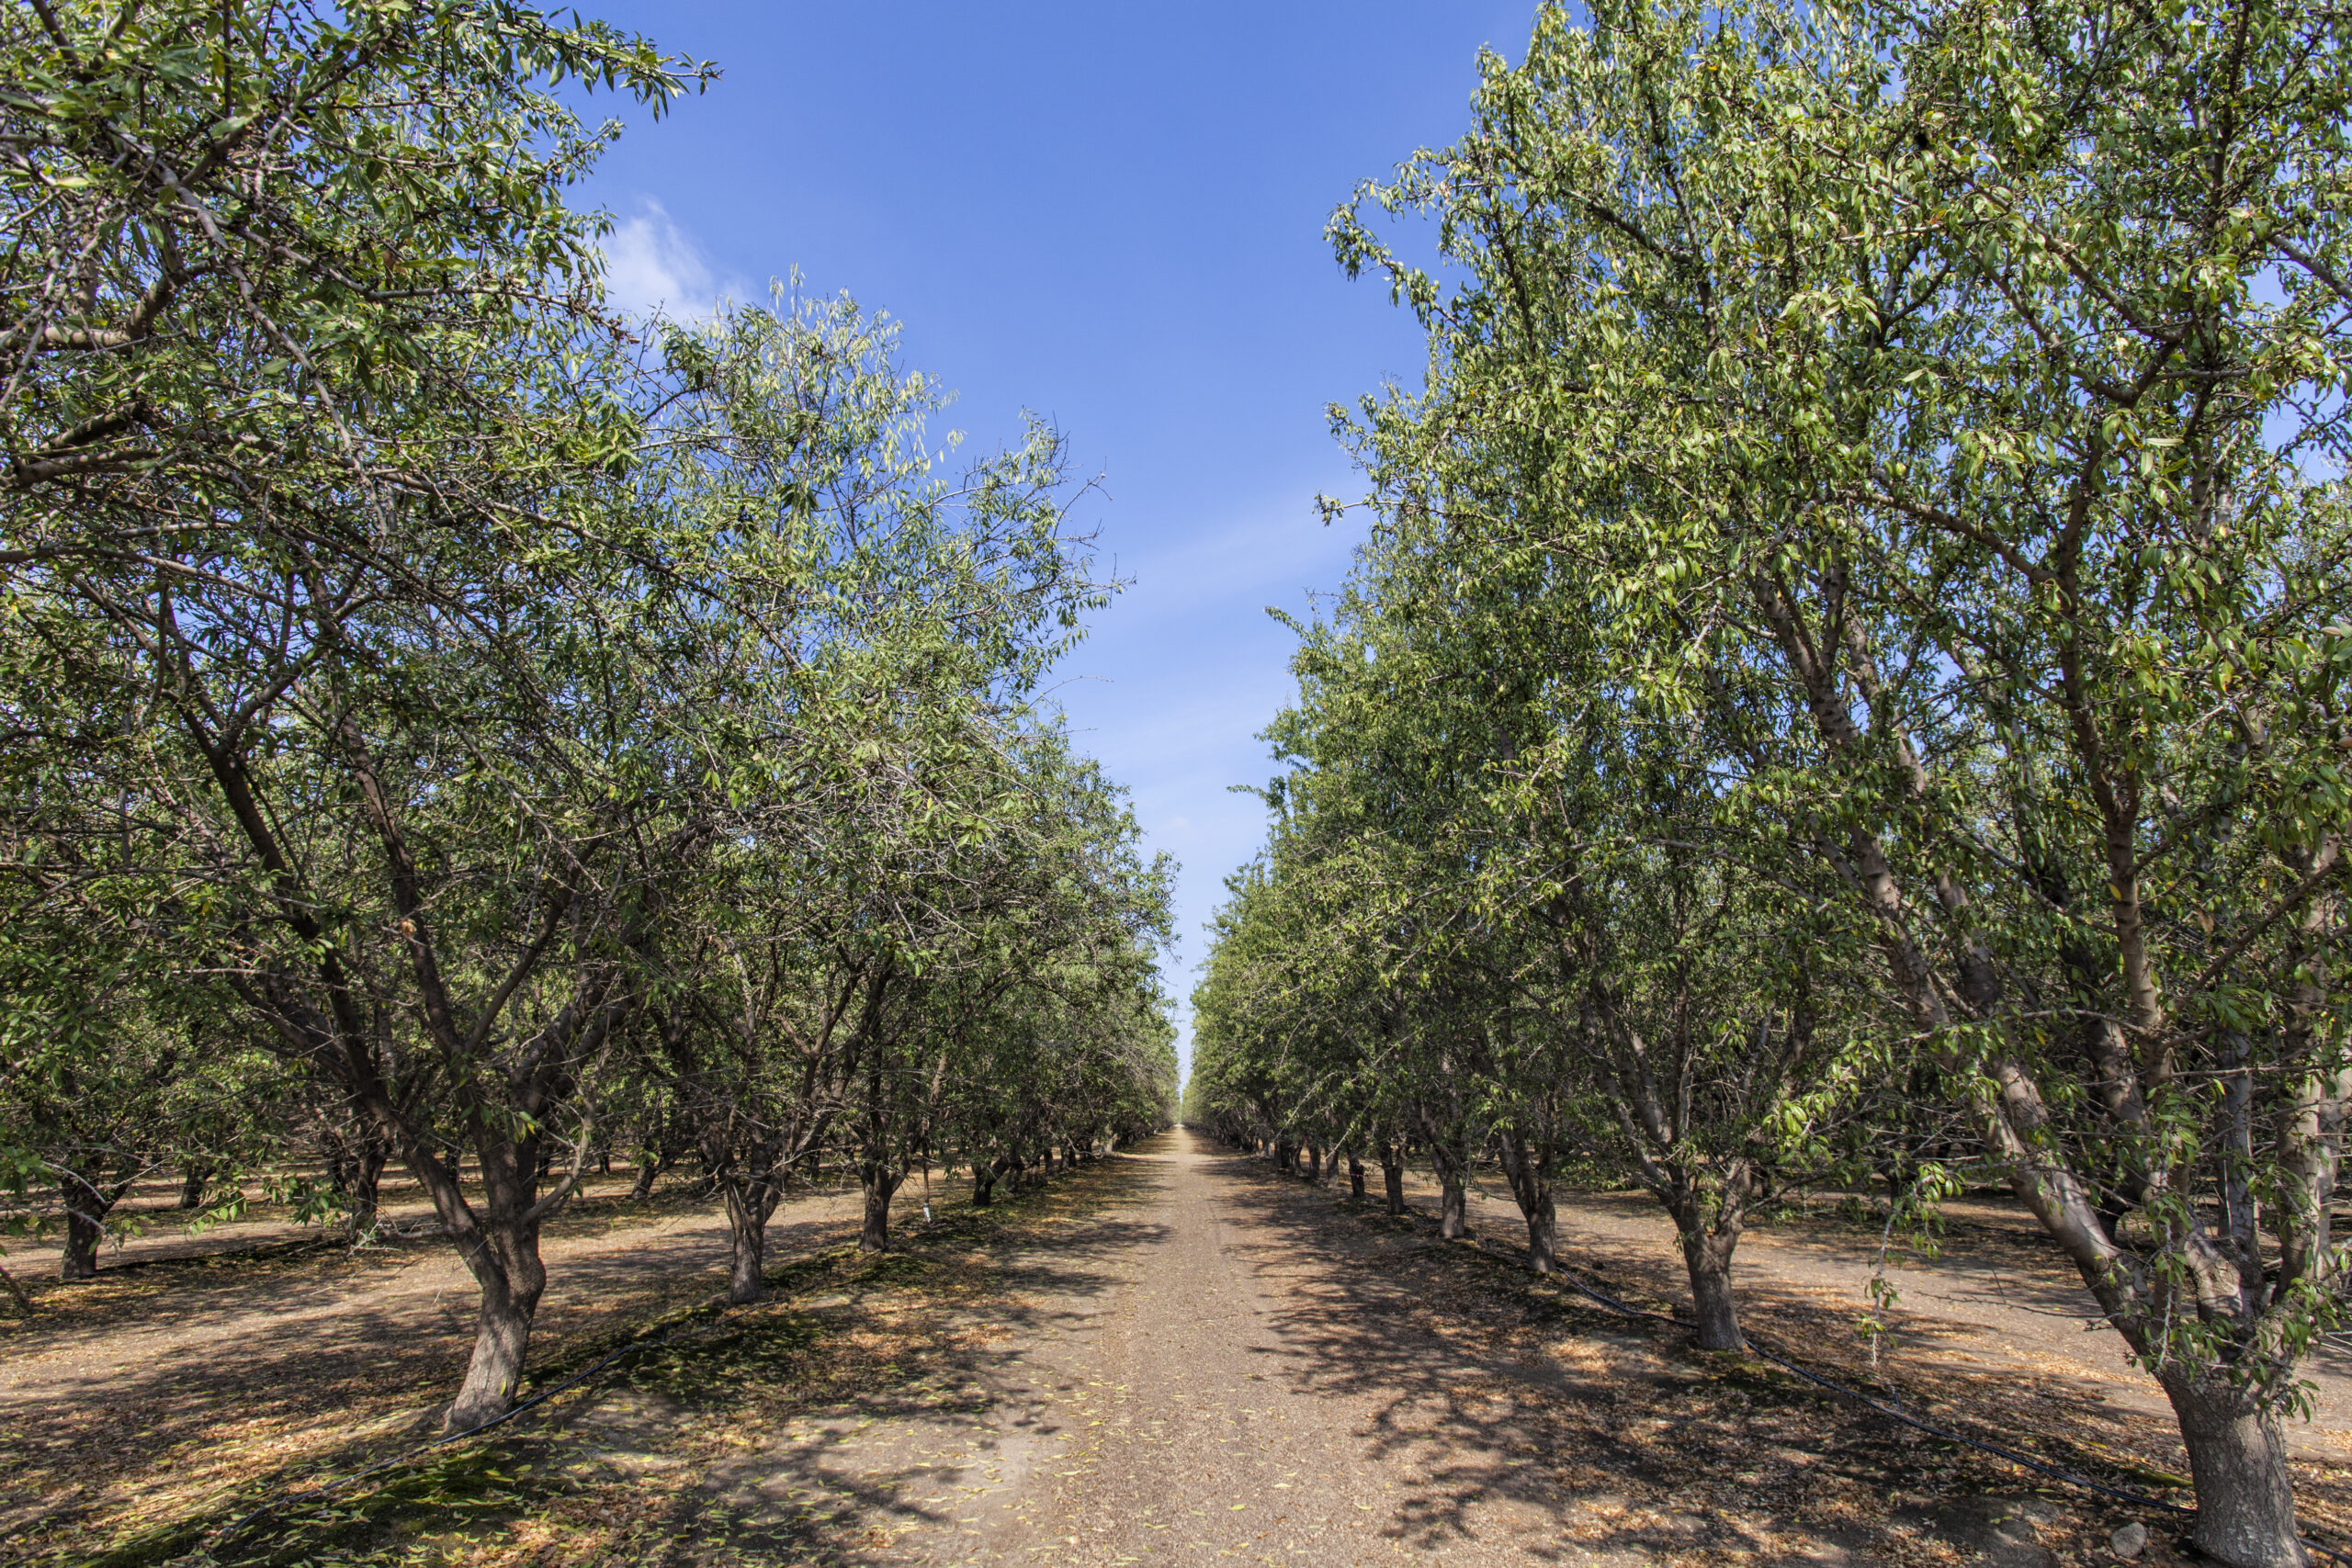 An almond orchard in Tulare County in the San Joaquin Valley, California Almond Orchard, Tulare County, San Joaquin Valley, California. Credit:Citizens of the Planet/Education Images/Universal Images Group via Getty Images